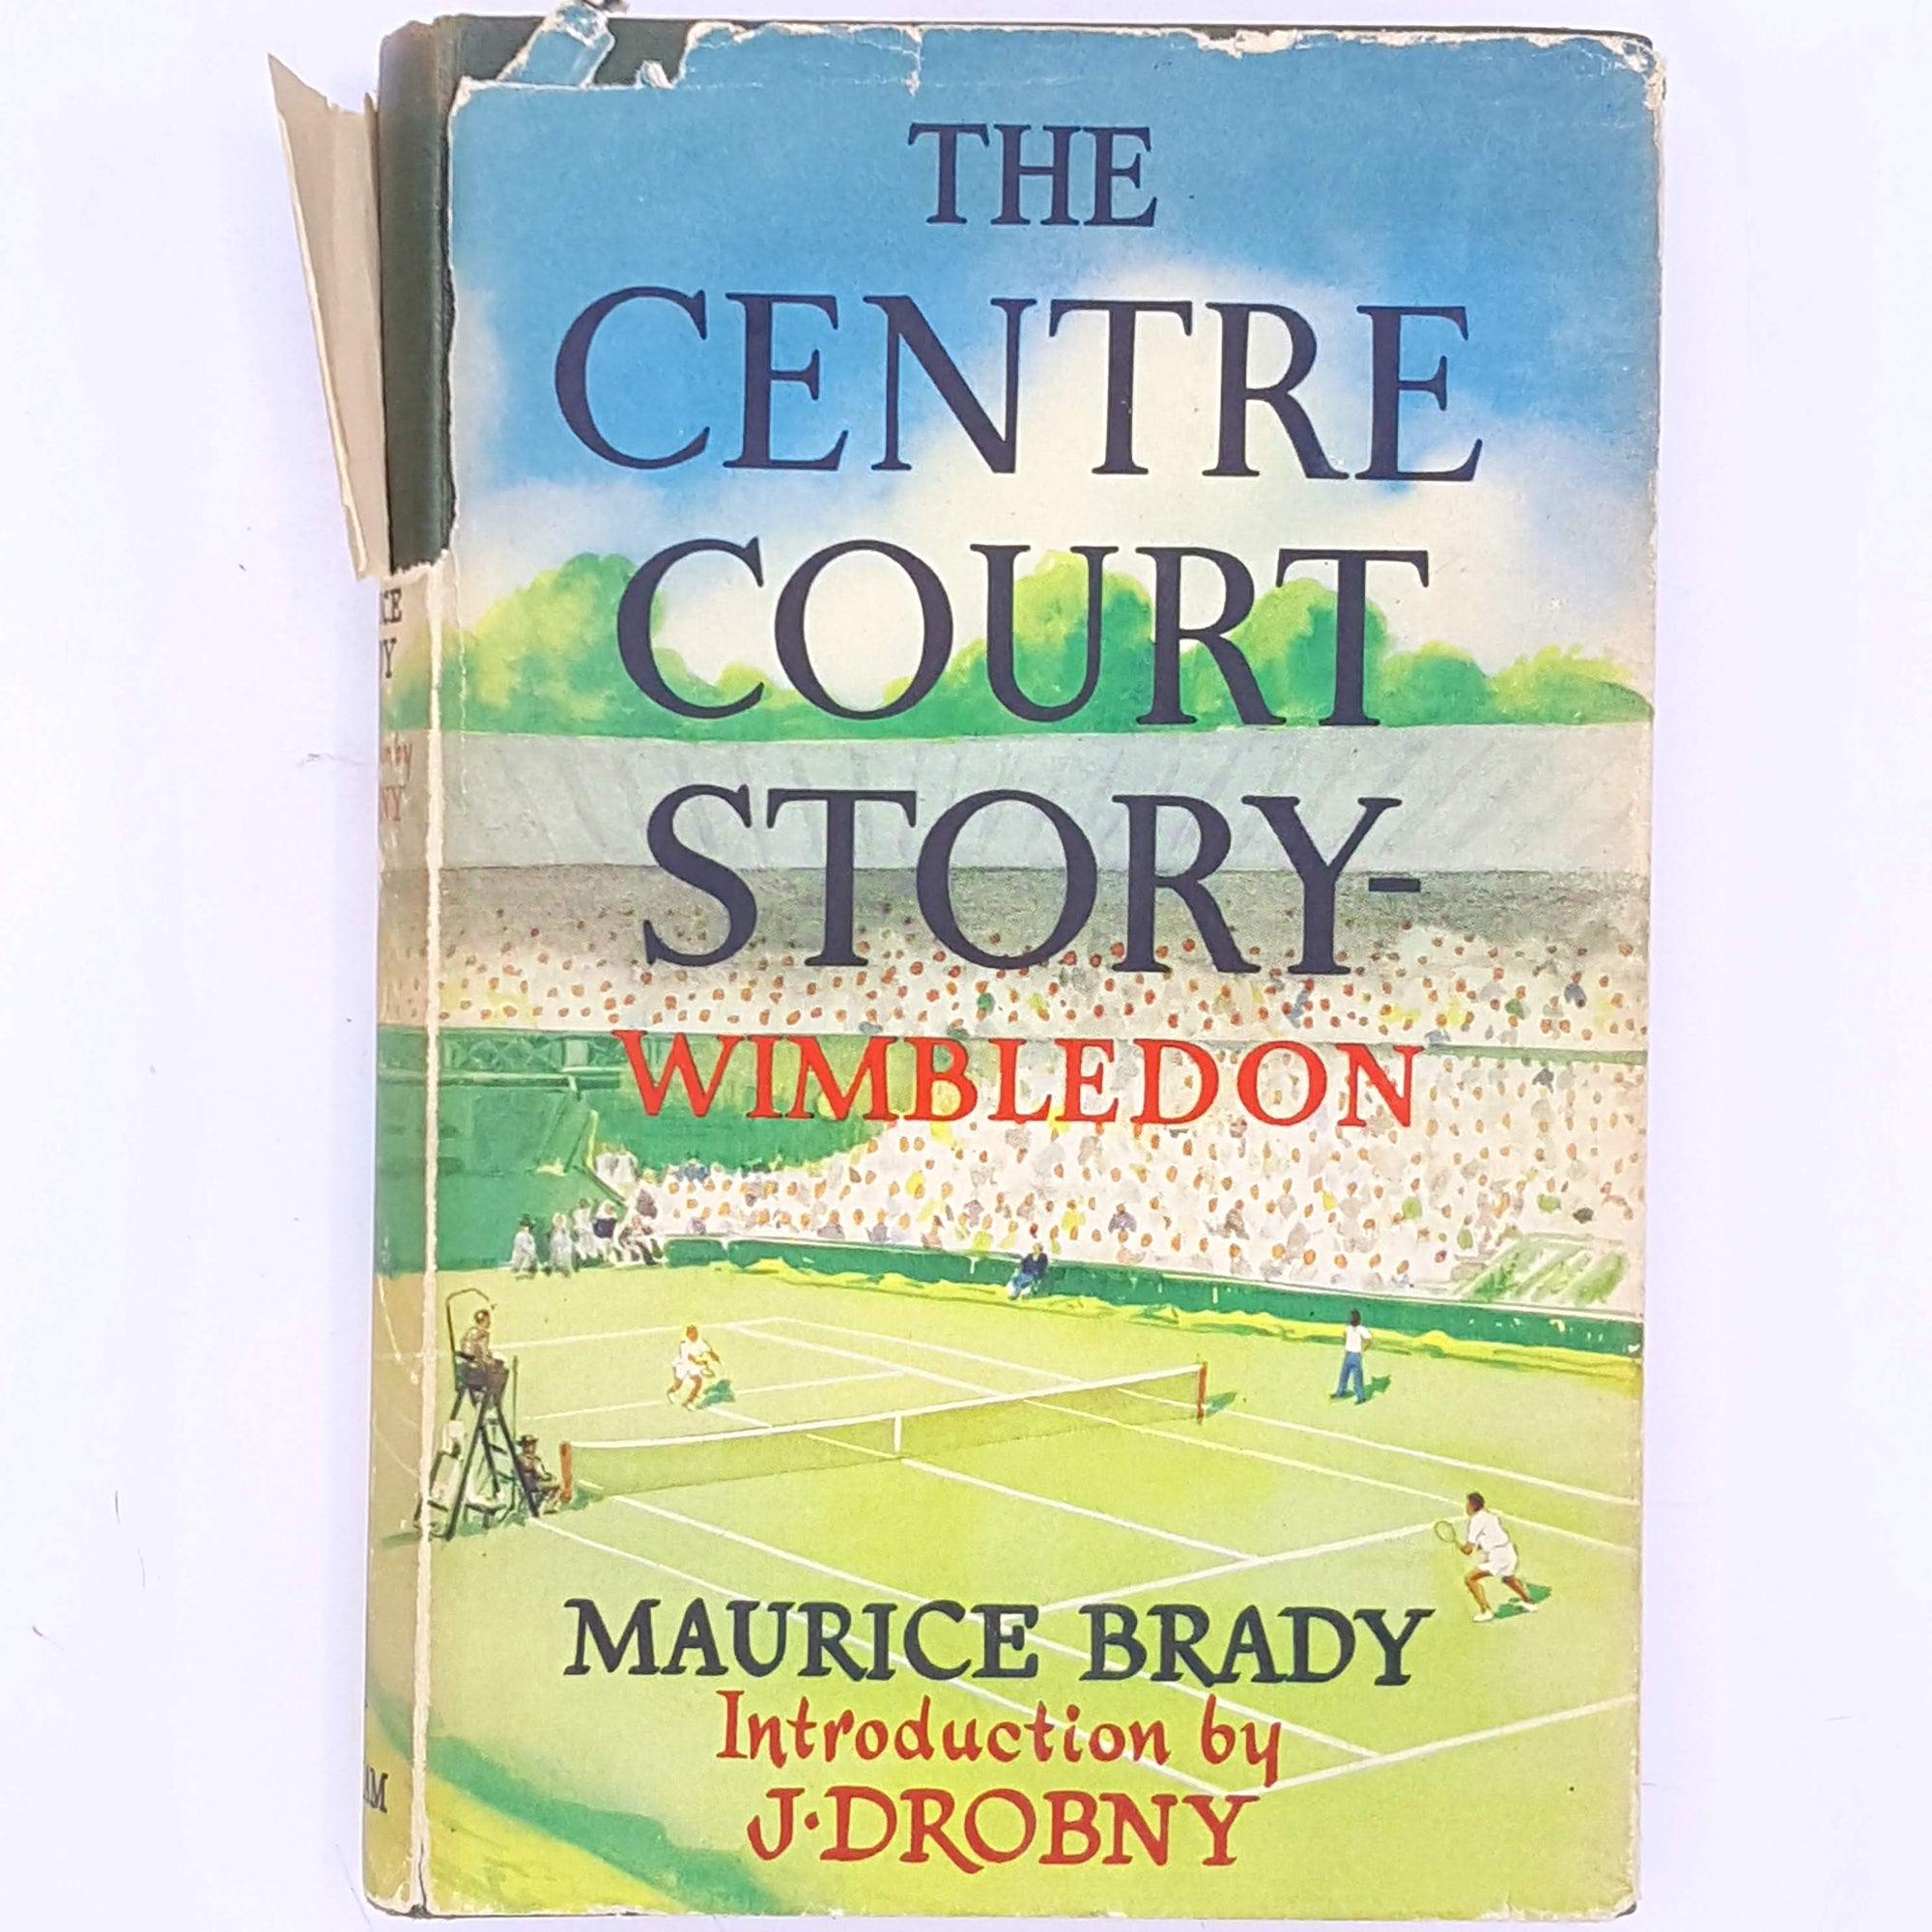 The Centre Court Story Wimbledon, Maurice Brady, 1957